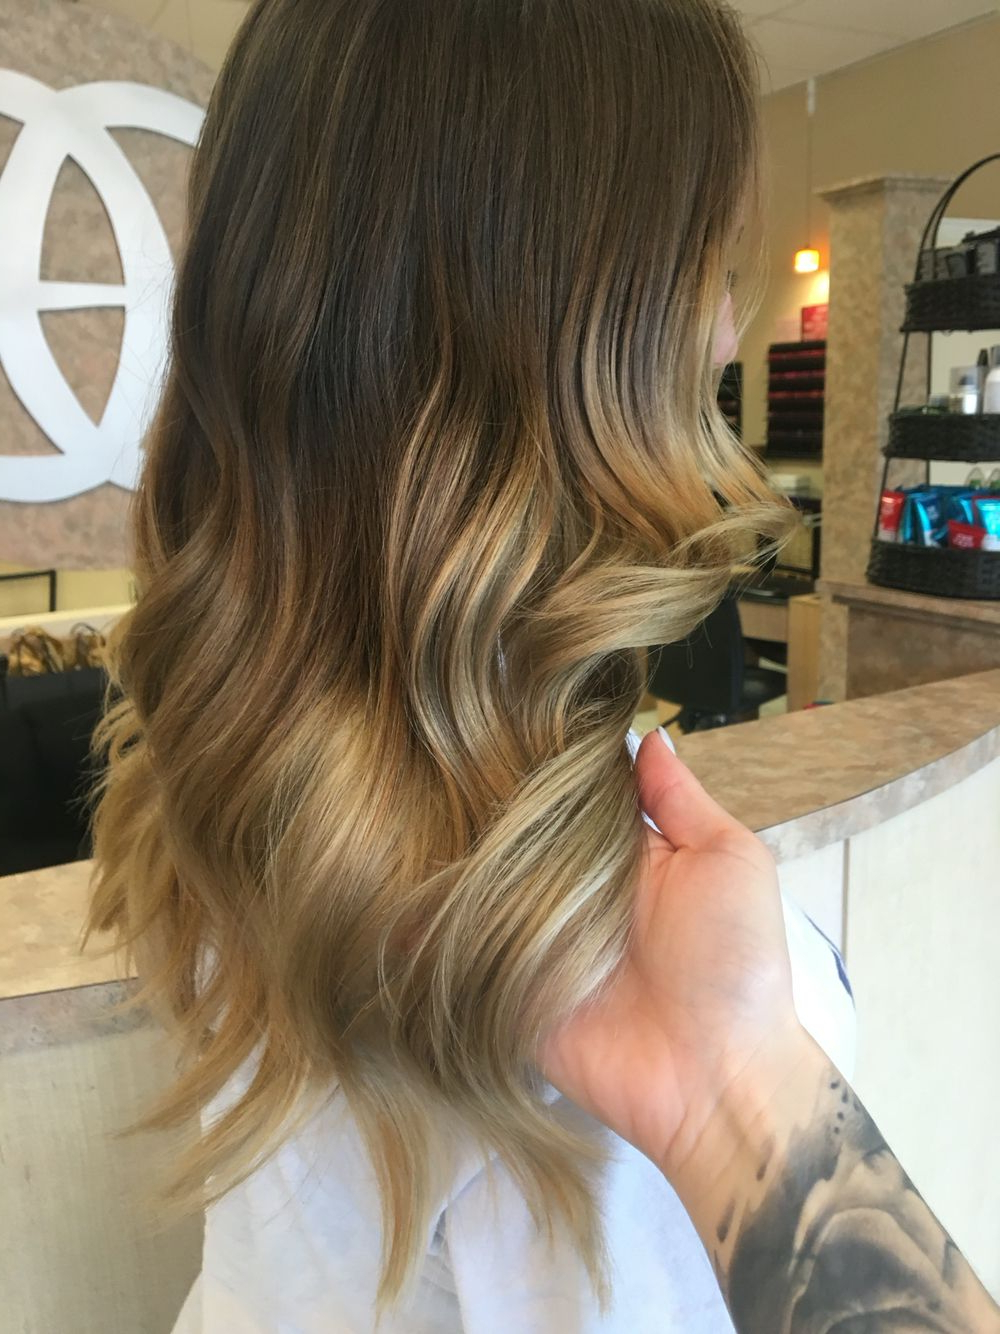 Ombré Hair Long Dark Roots Brunette Blonde Tips Golden Ash In Ash Blonde Balayage Ombre On Dark Hairstyles (View 8 of 20)